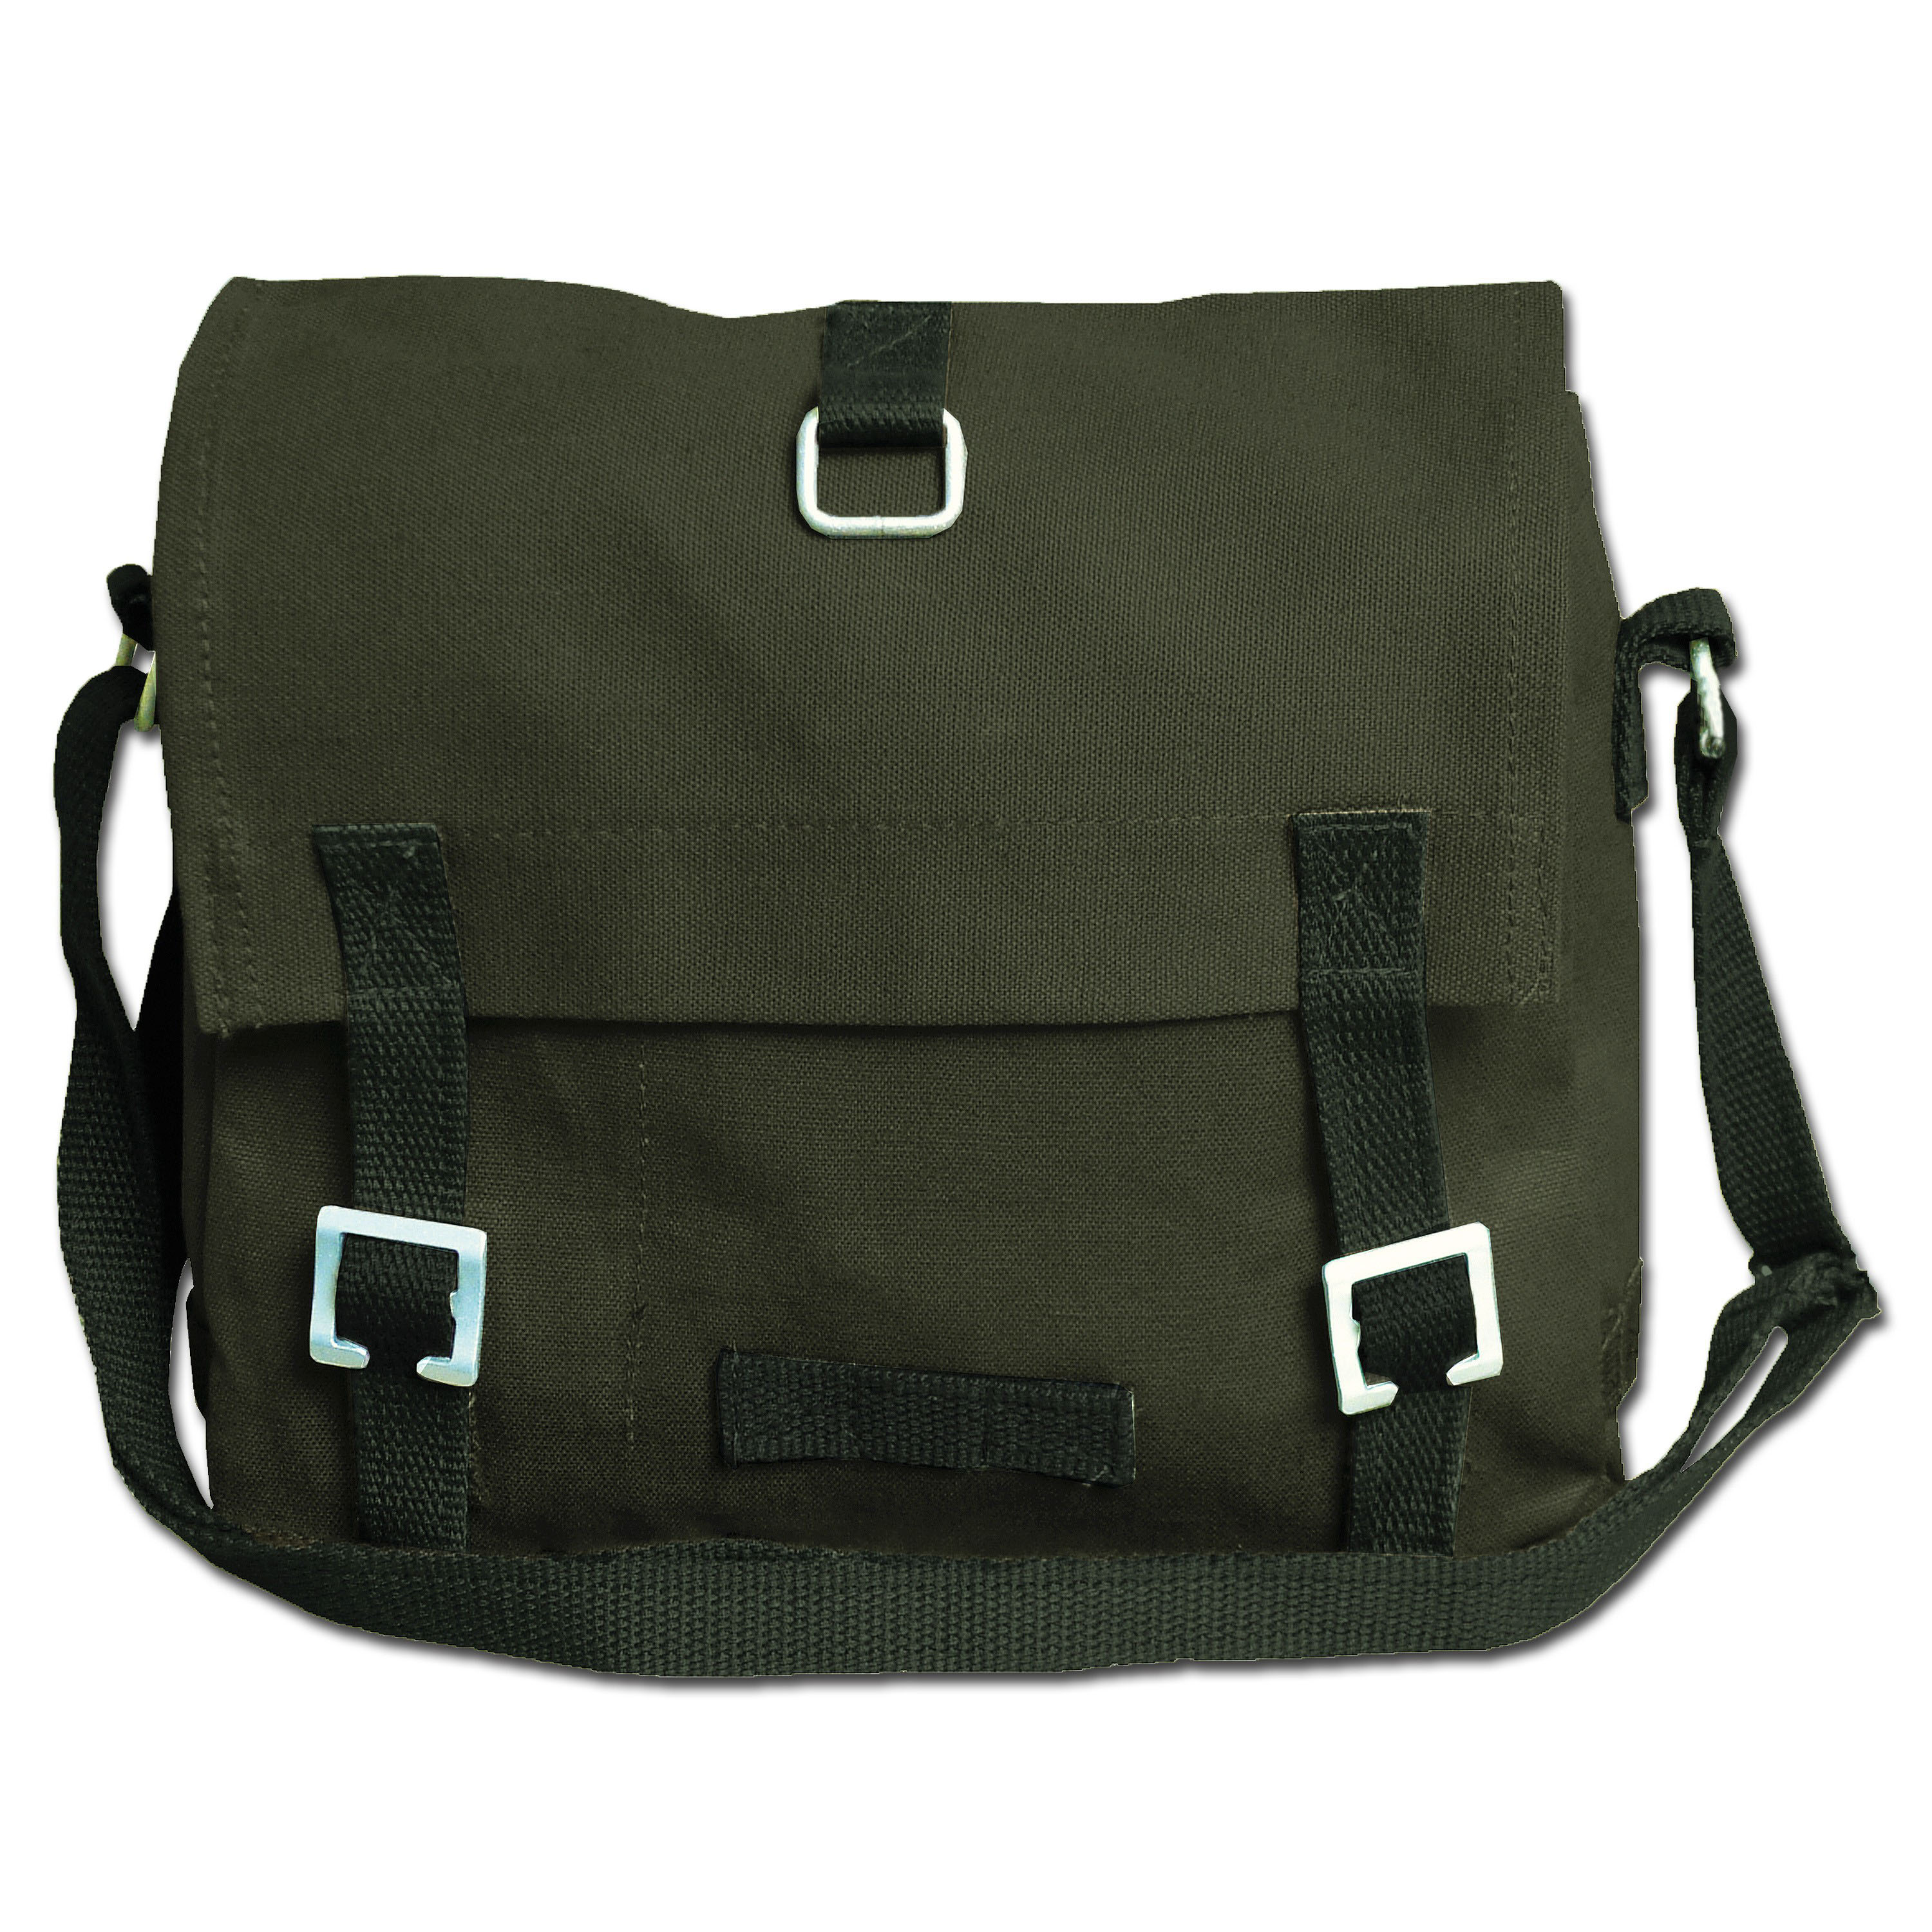 Musette BW olive